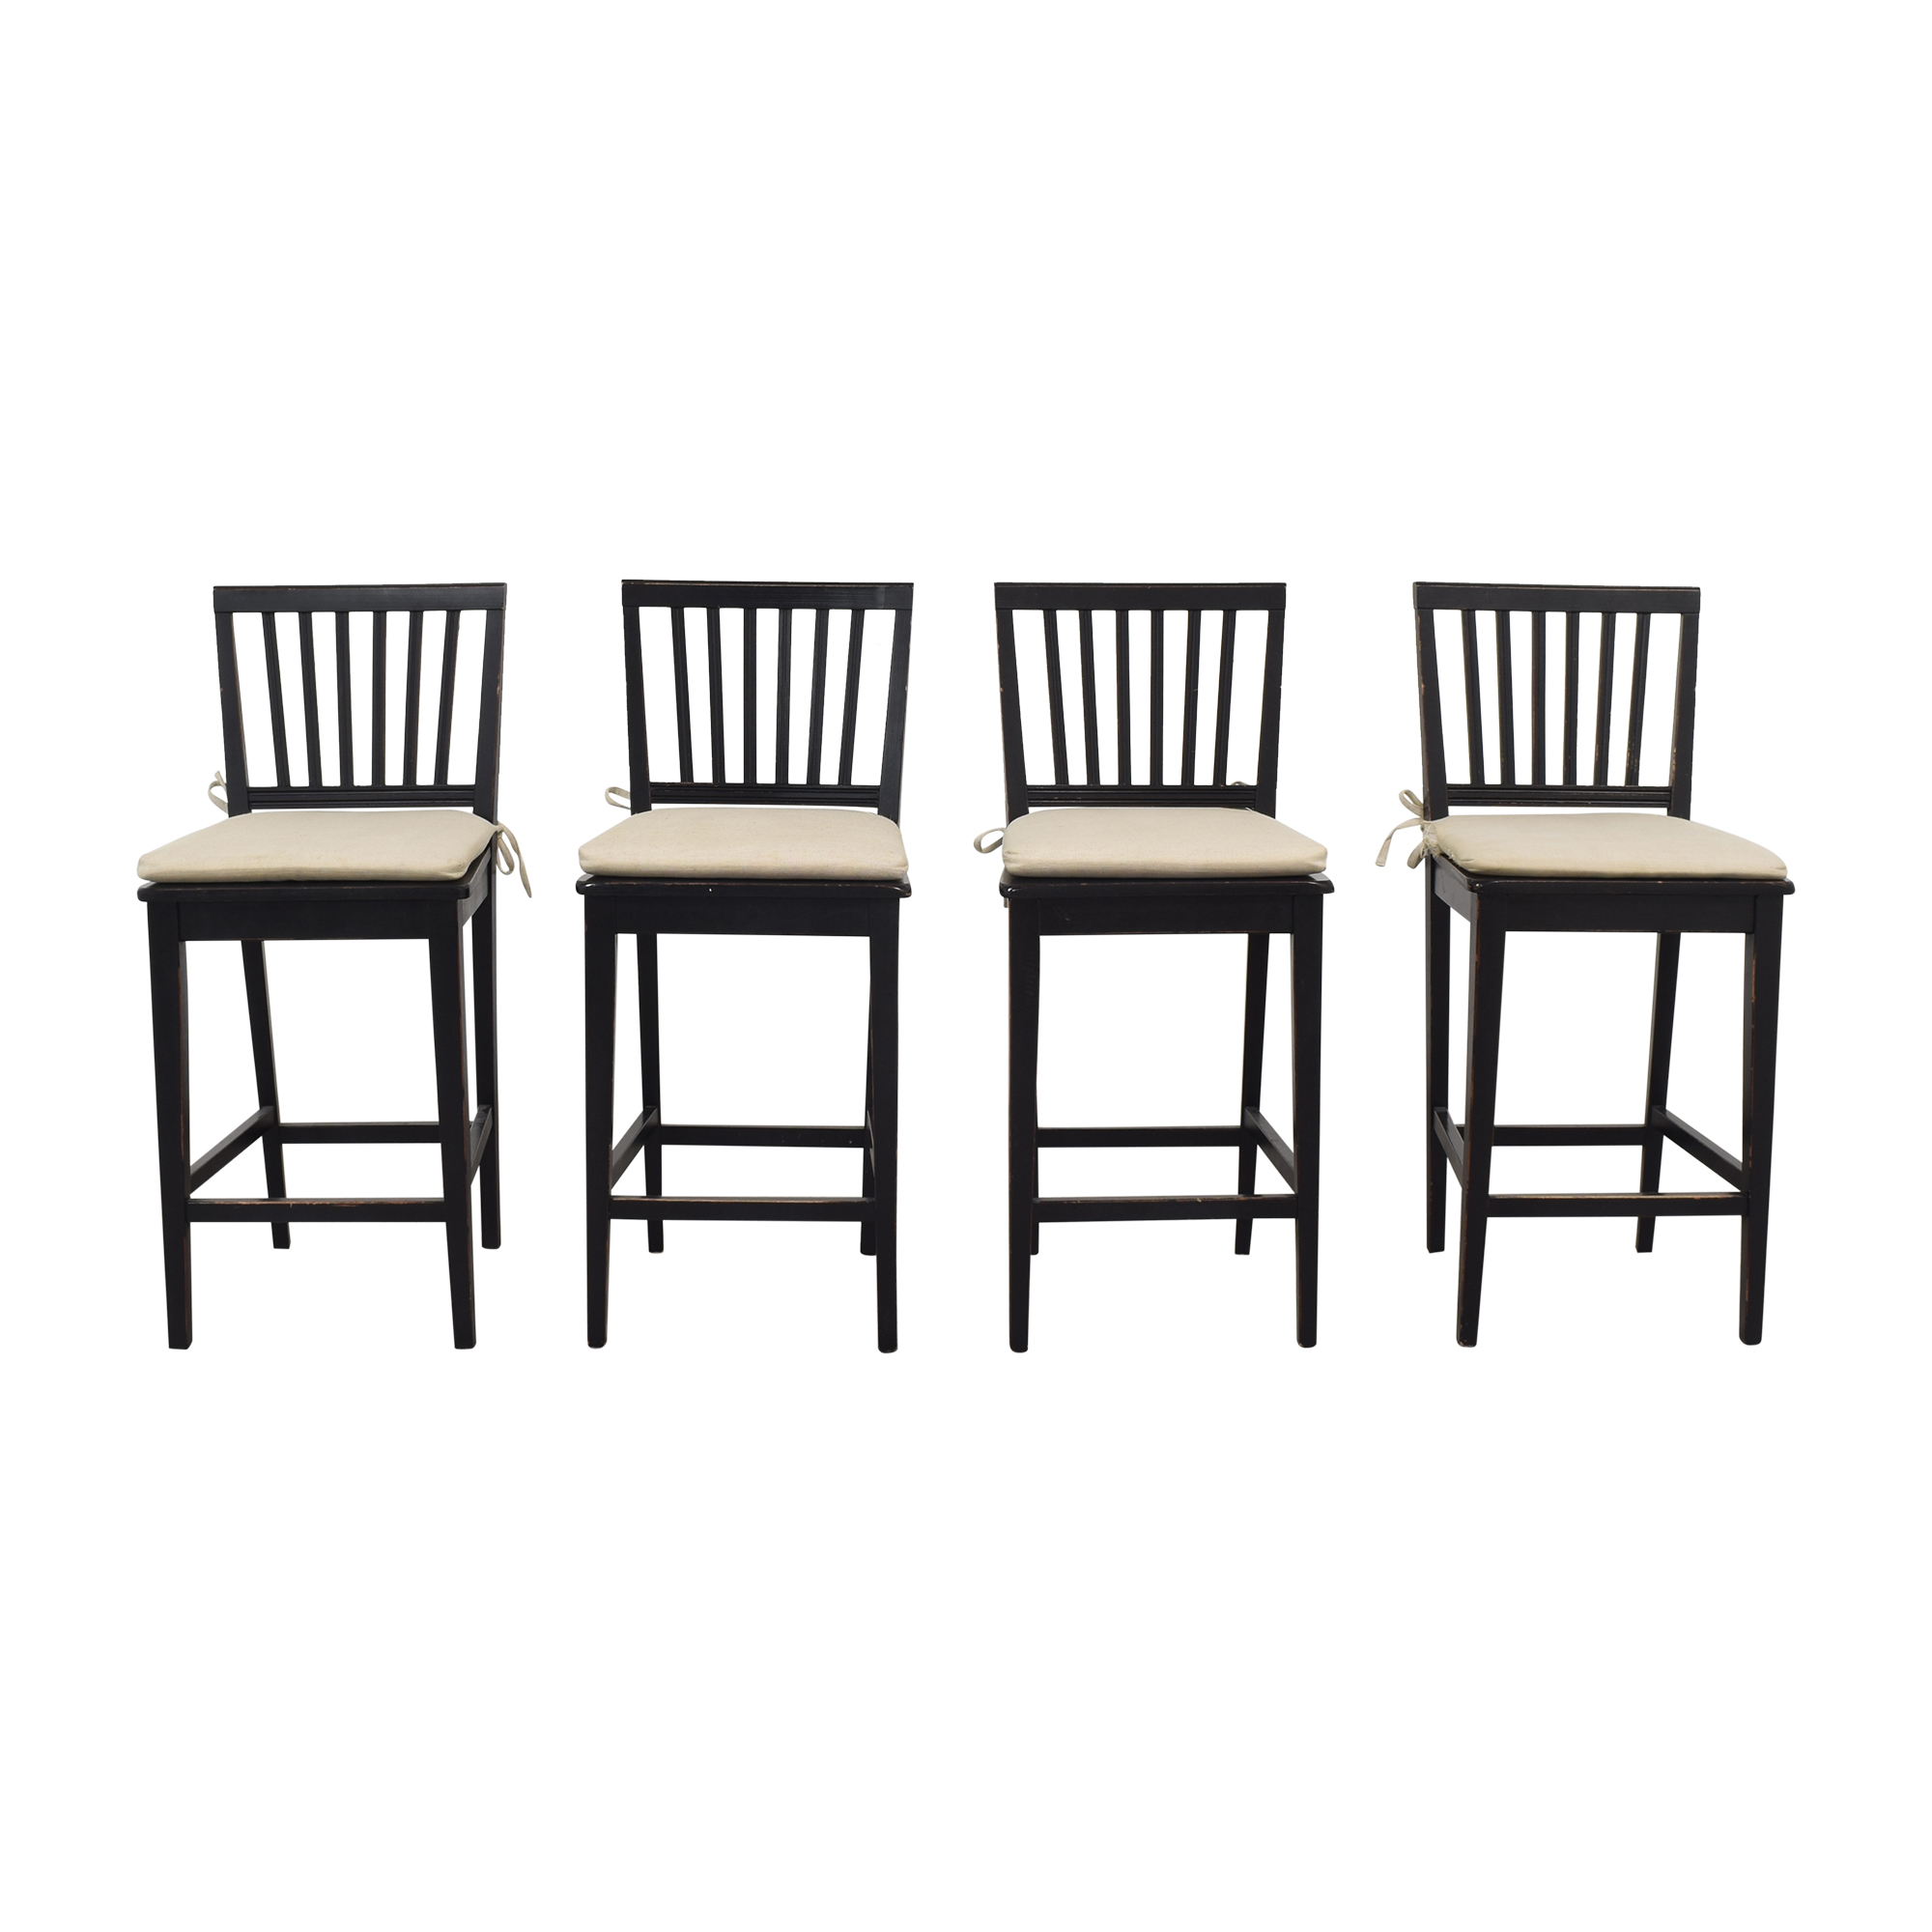 Crate & Barrel Crate & Barrel Buying & Design Counter Height Chairs black & off white